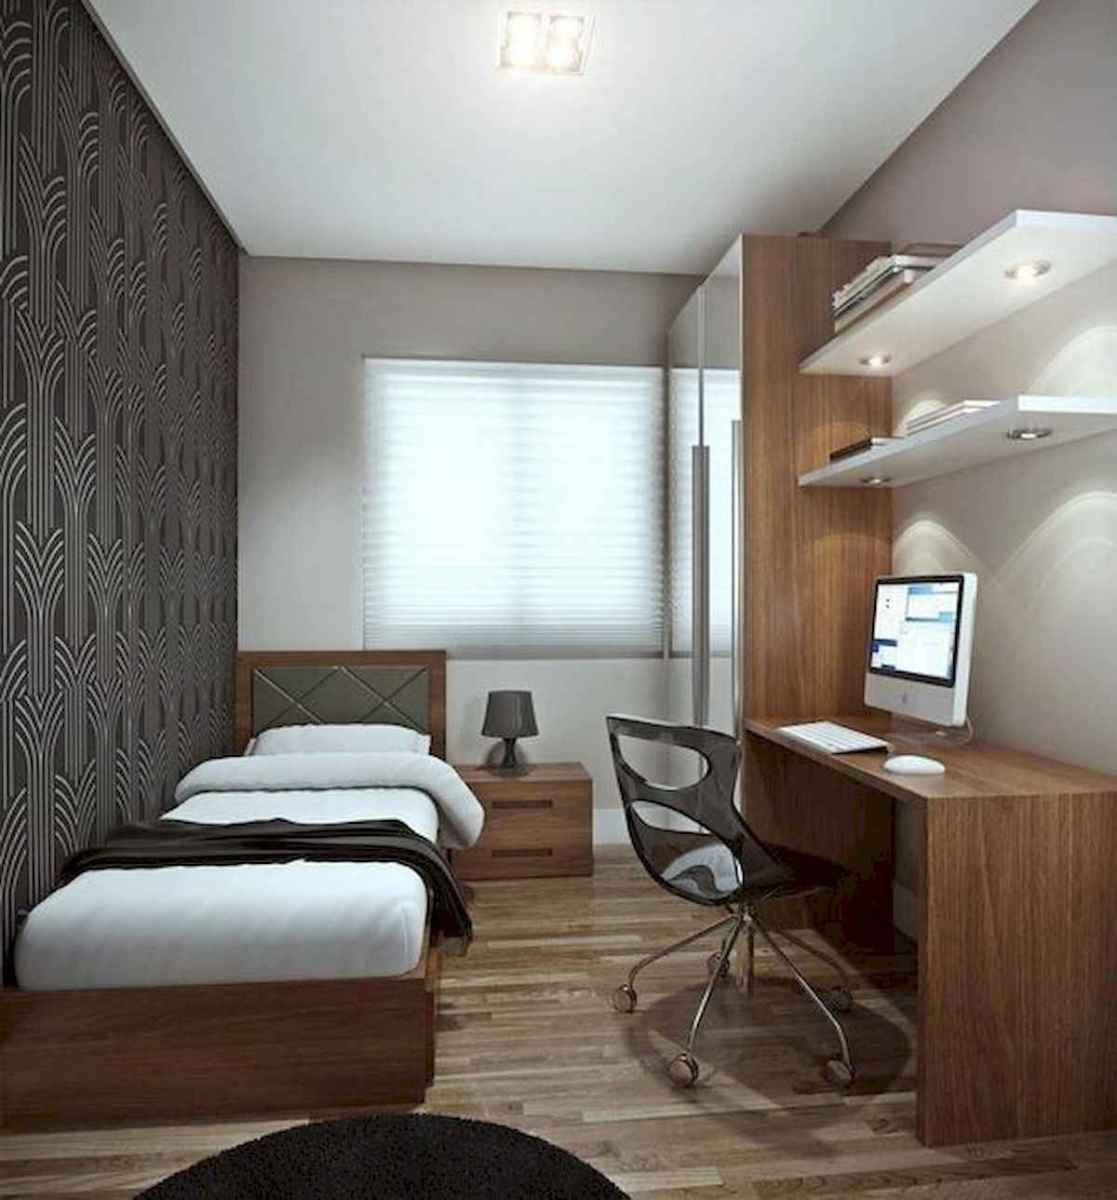 50 Stunning Small Apartment Bedroom Design Ideas and Decor (48)